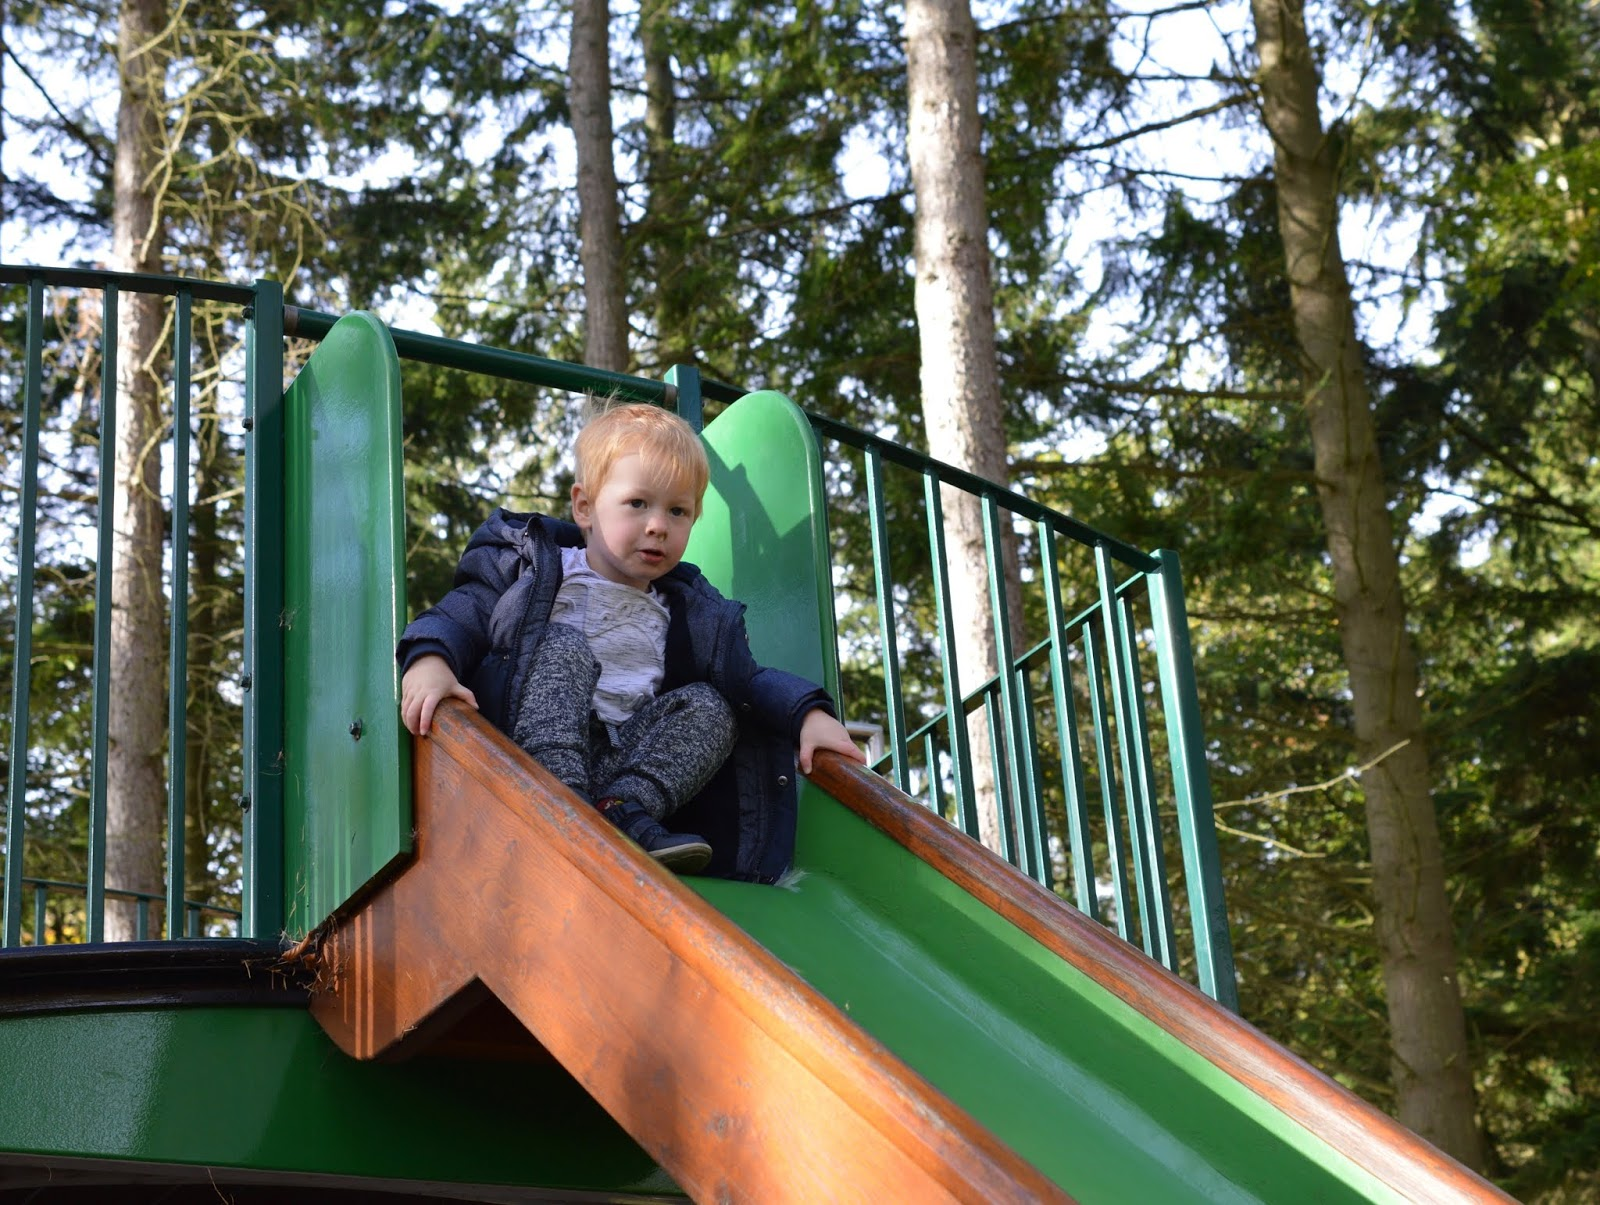 Visiting the Adventure Playground & Outdoor Play Areas at Wallington Hall  - train slide